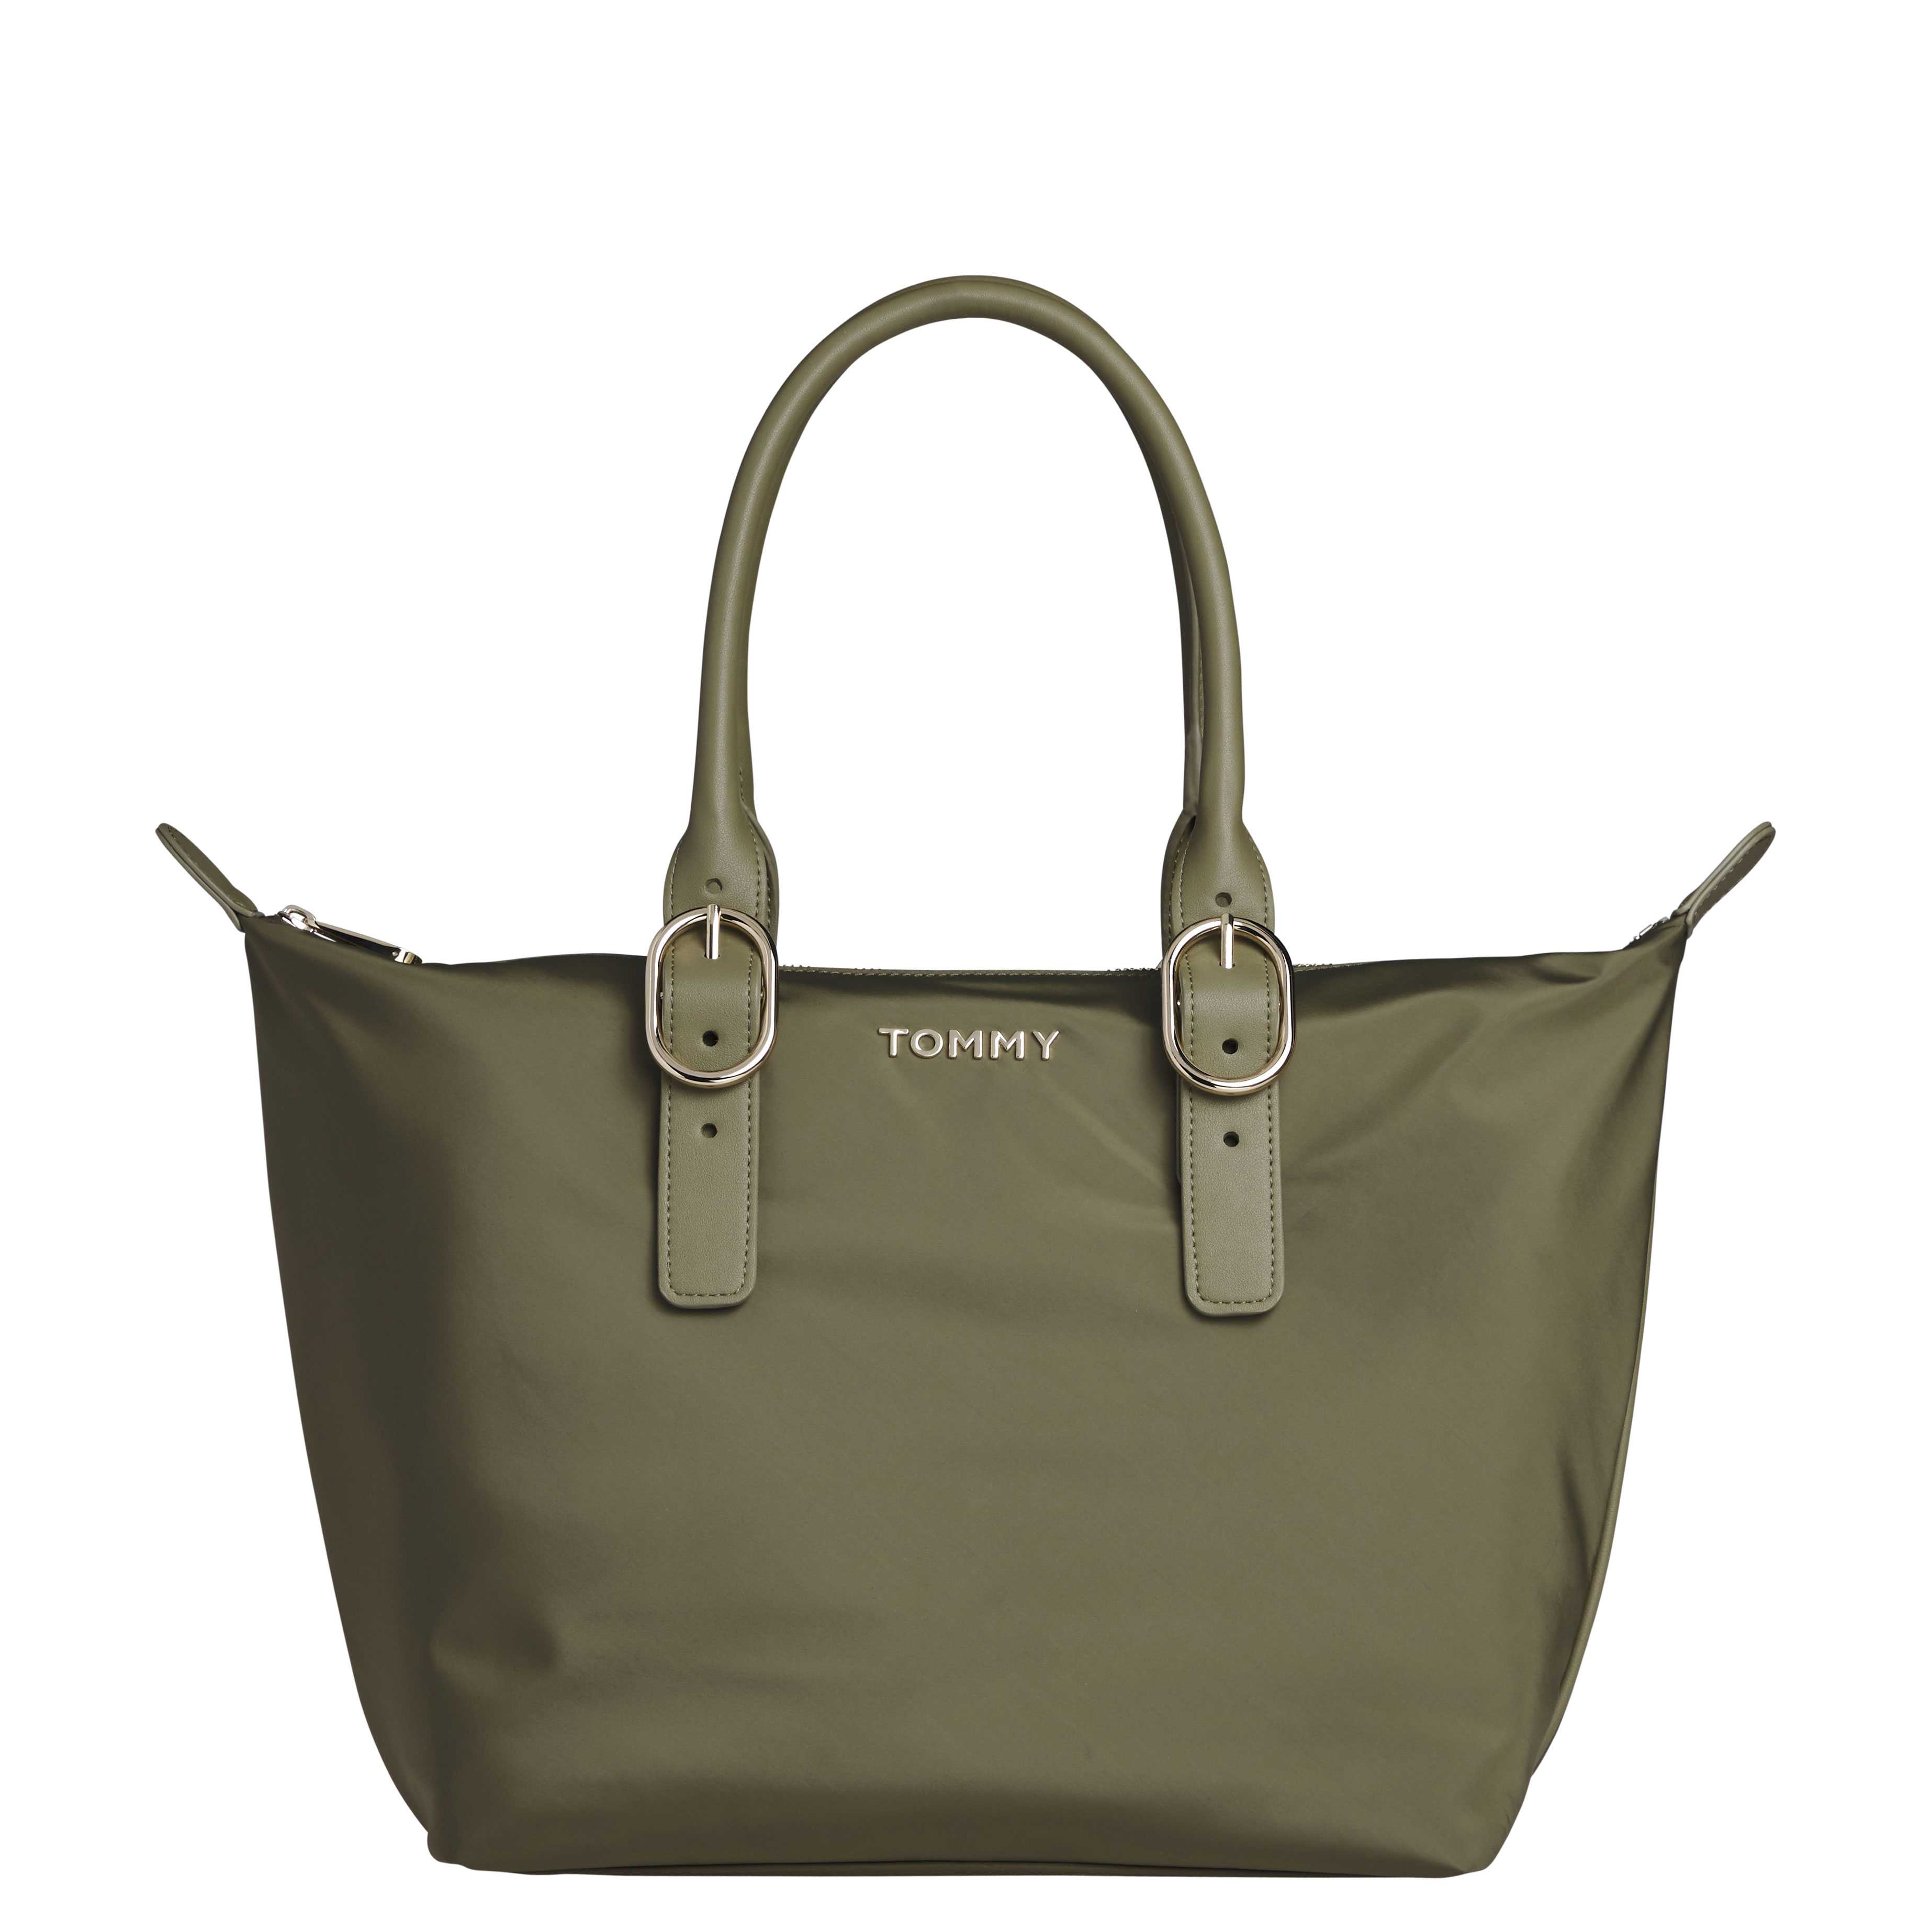 TOMMY HILFIGER Marroquinería Bolsos Utility Olive AW0AW08855-MSH